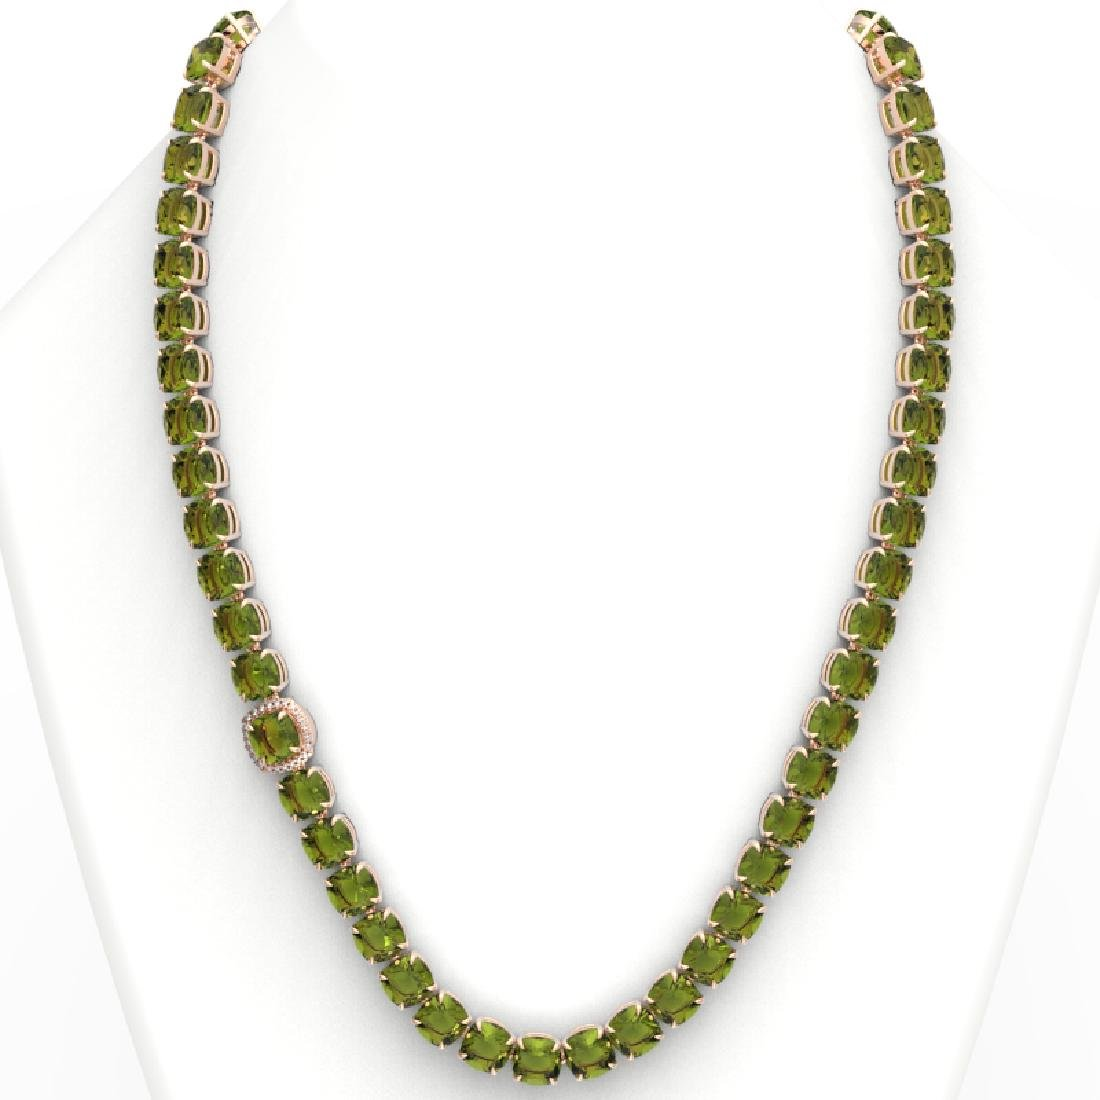 100 CTW Green Tourmaline & VS/SI Diamond Necklace 14K - 3